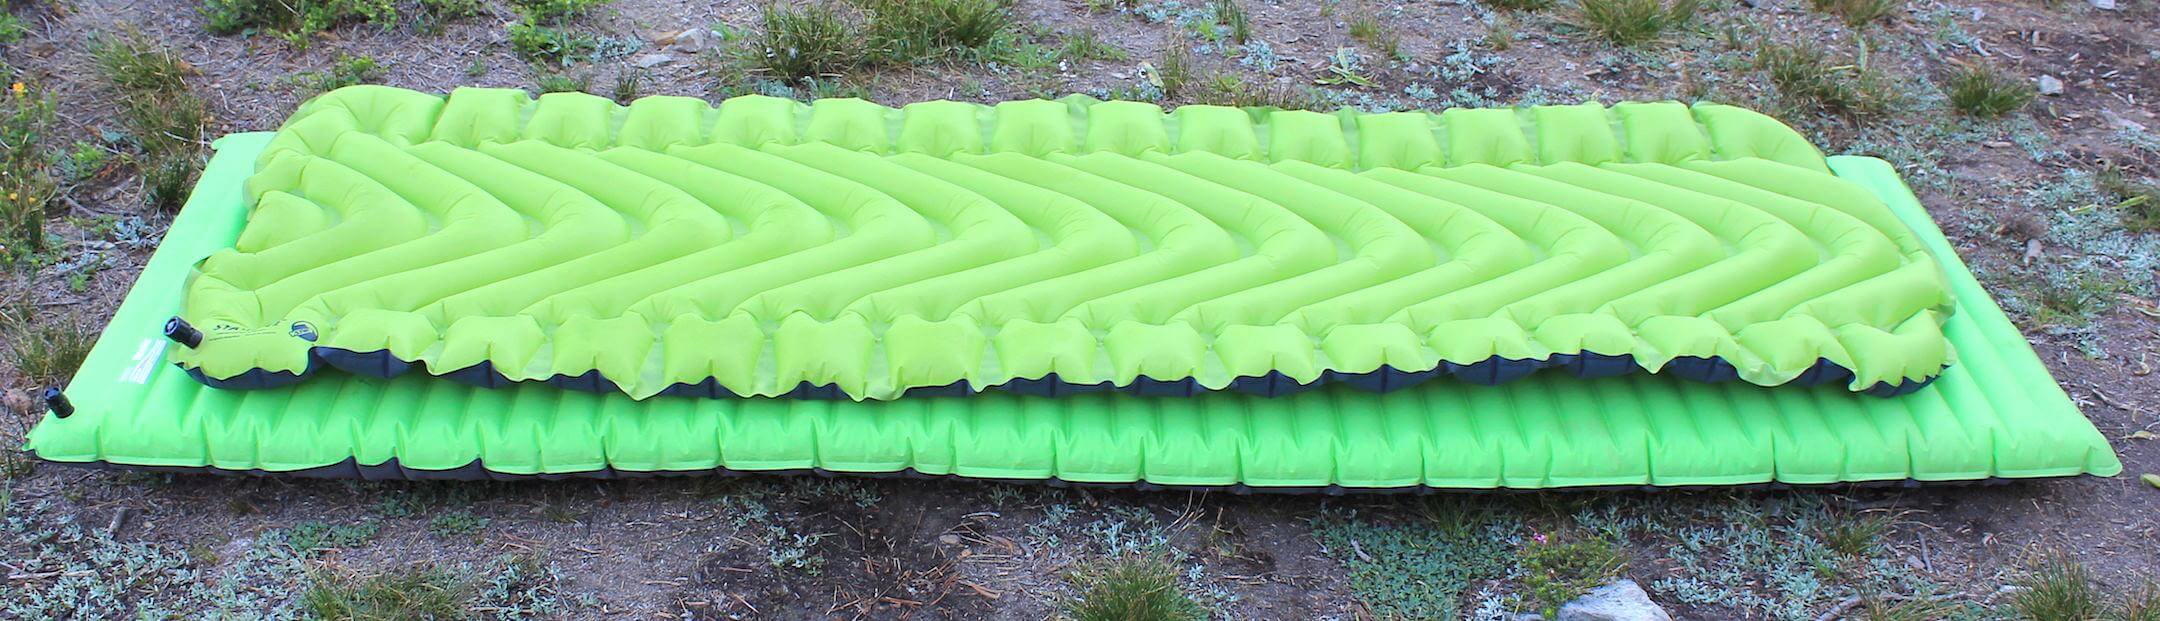 This image shows two of the best sleeping pads for backpacking and camping,  the Static